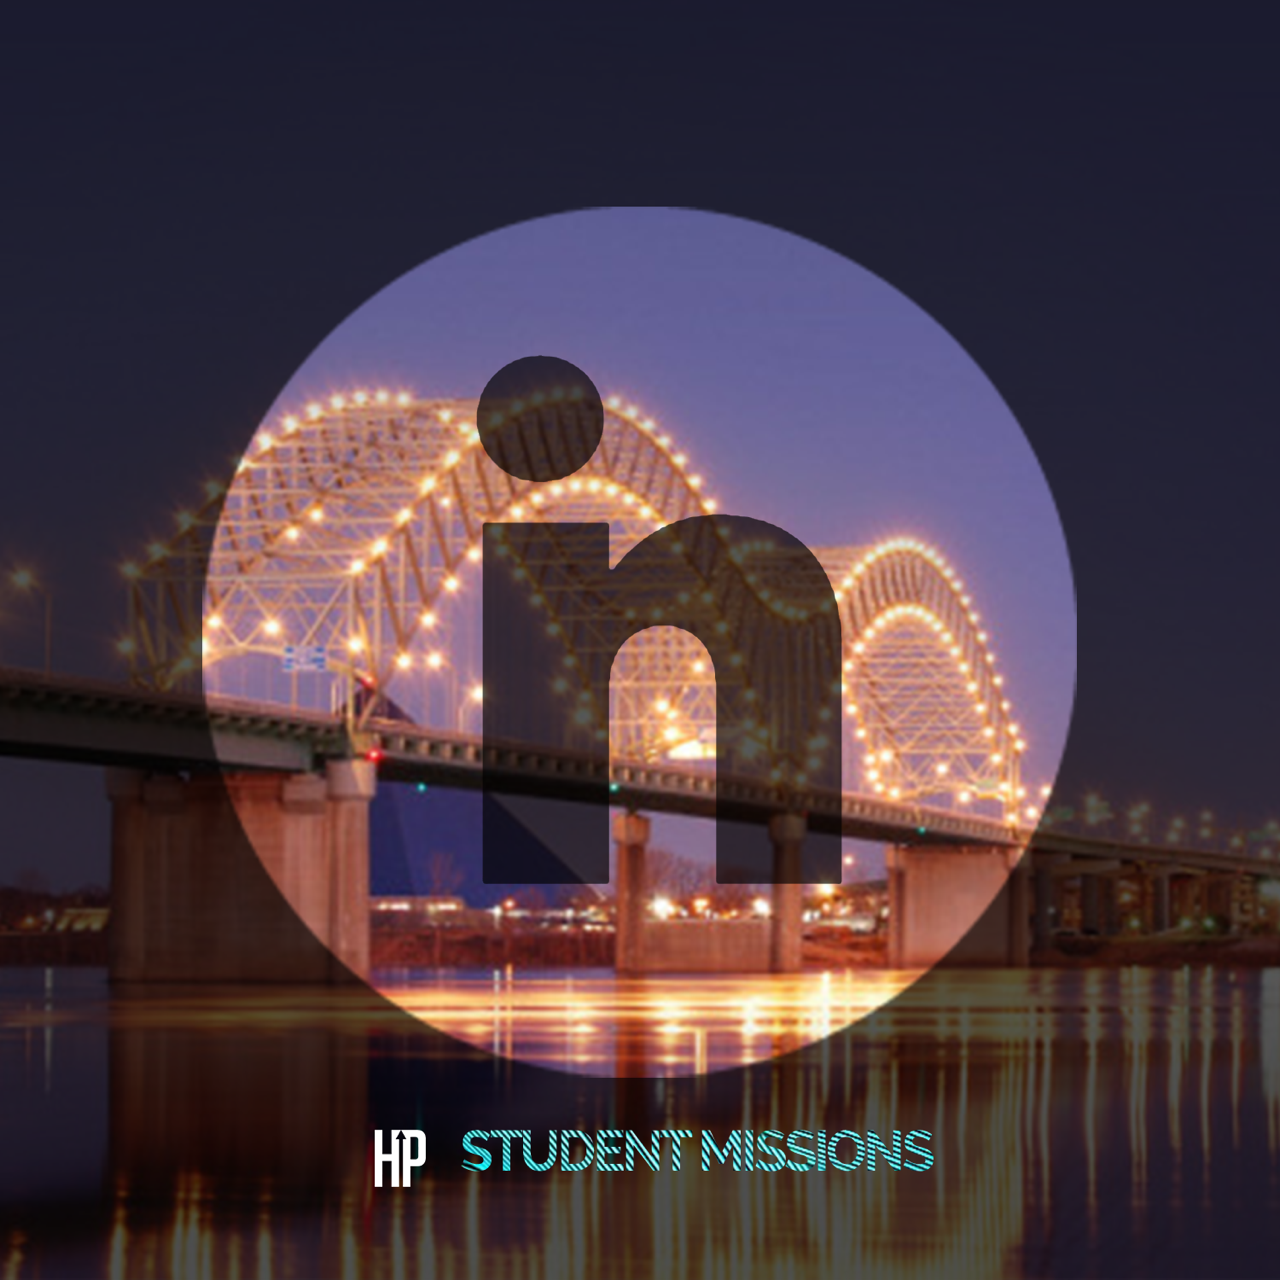 Highschoolstudentsmissions